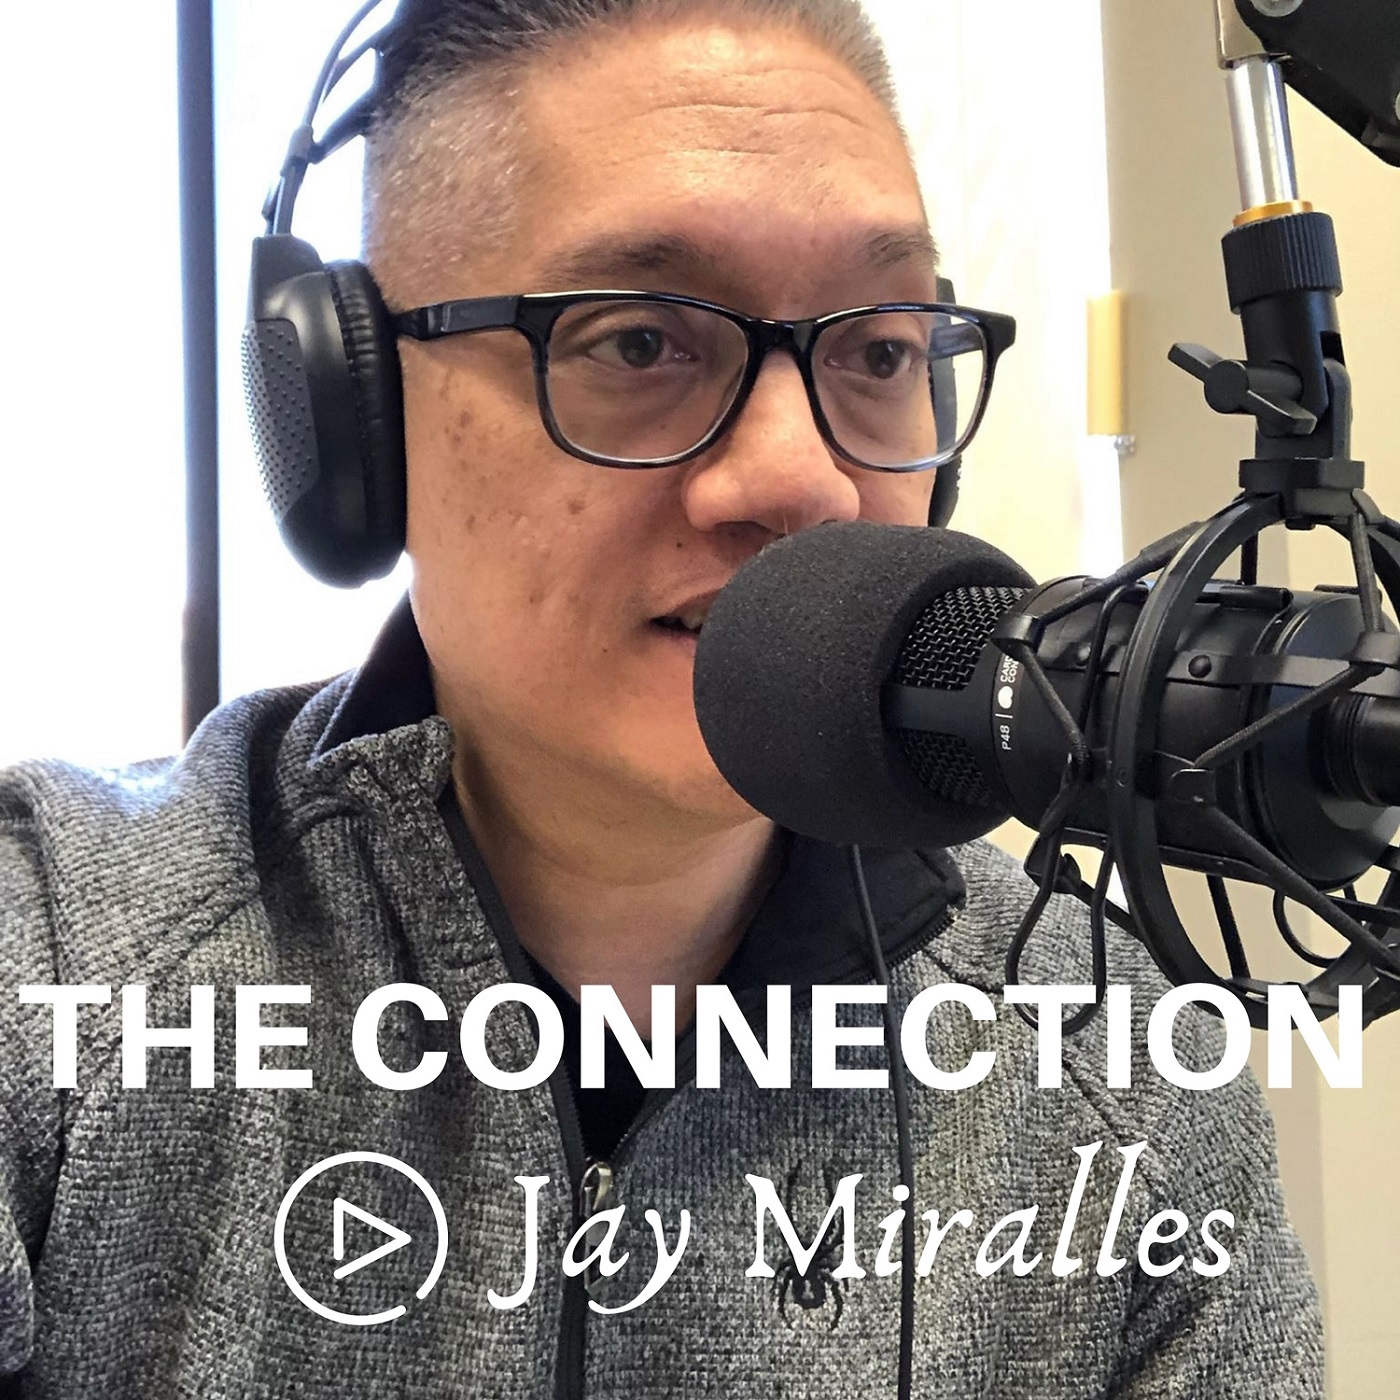 The Connection with Jay Miralles show art